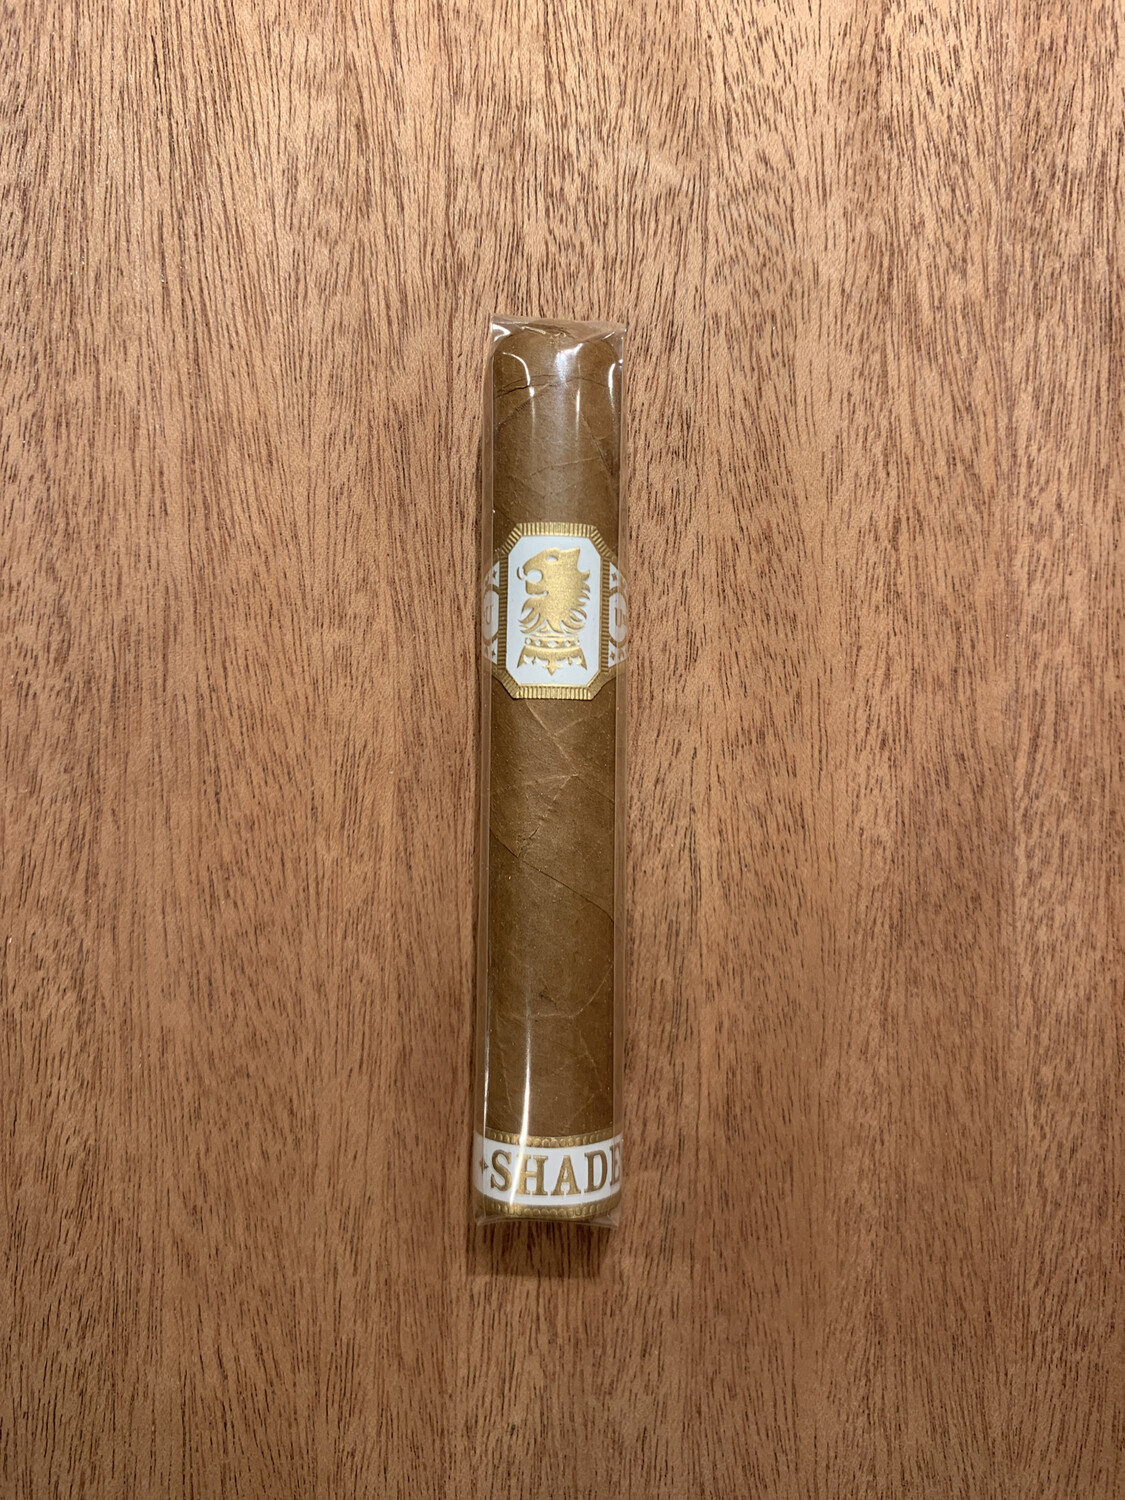 DE - Undercrown - Shade Robusto